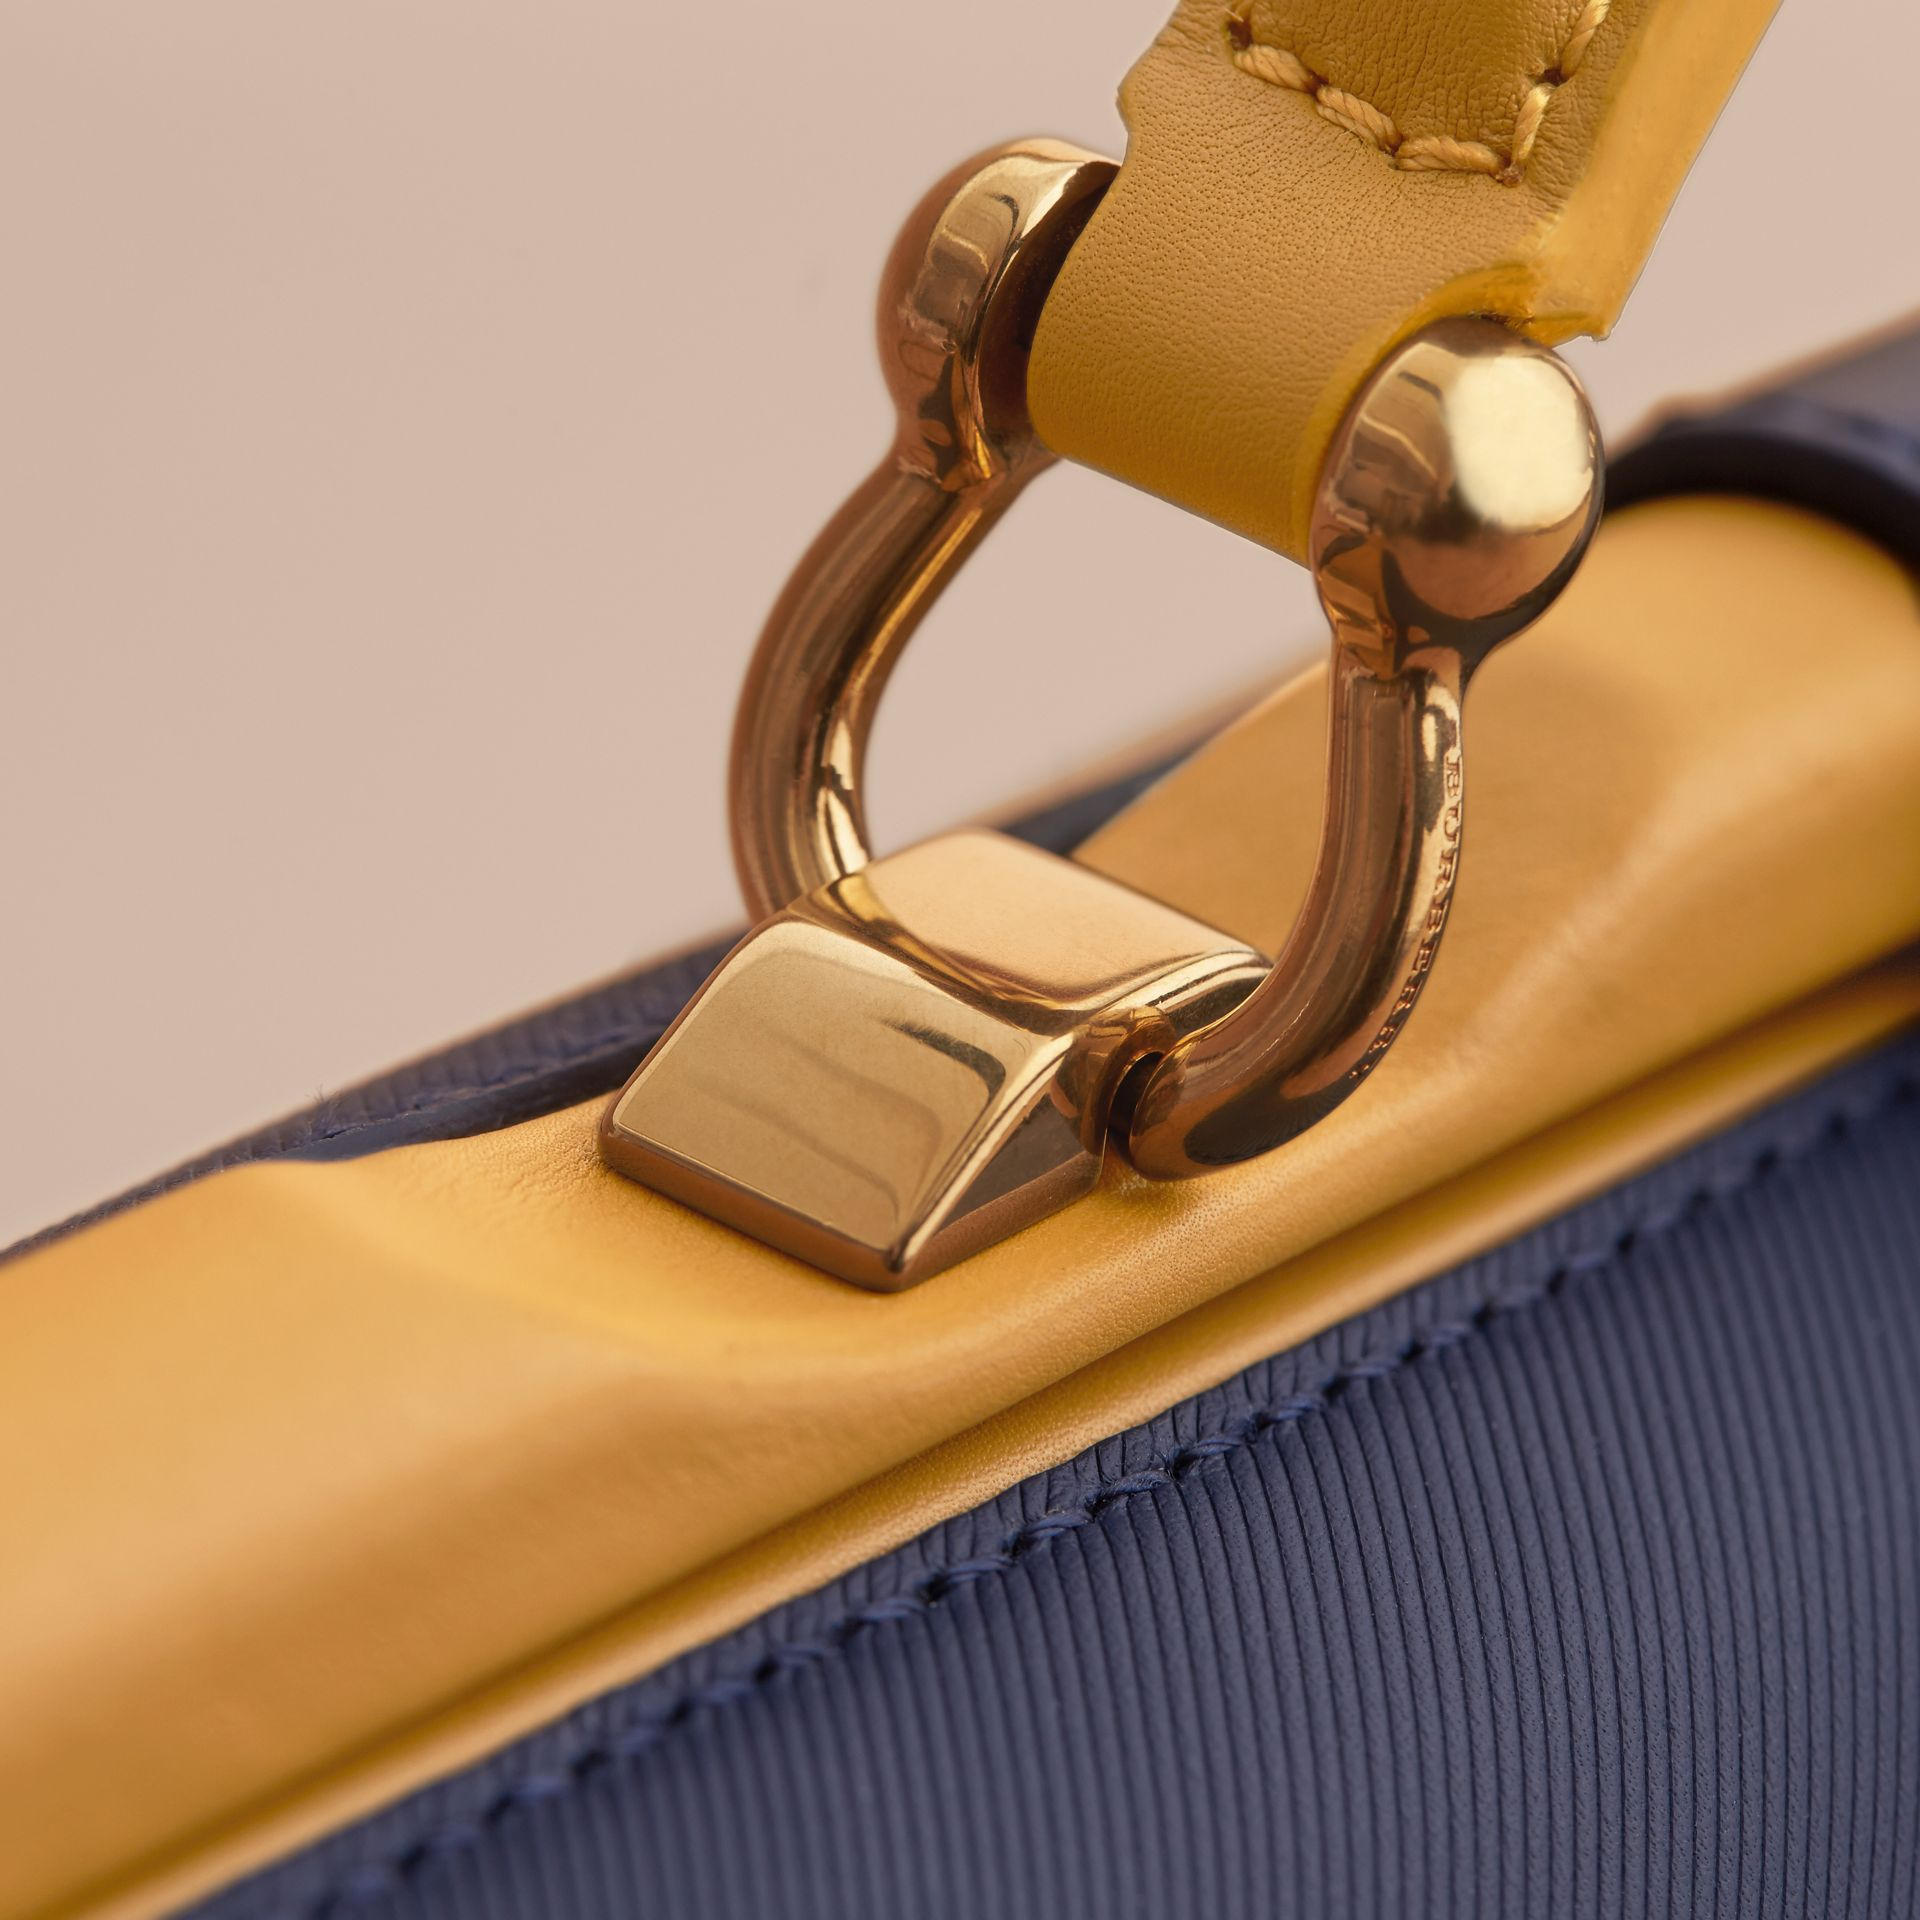 The DK88 Bowling Bag - gallery image 6